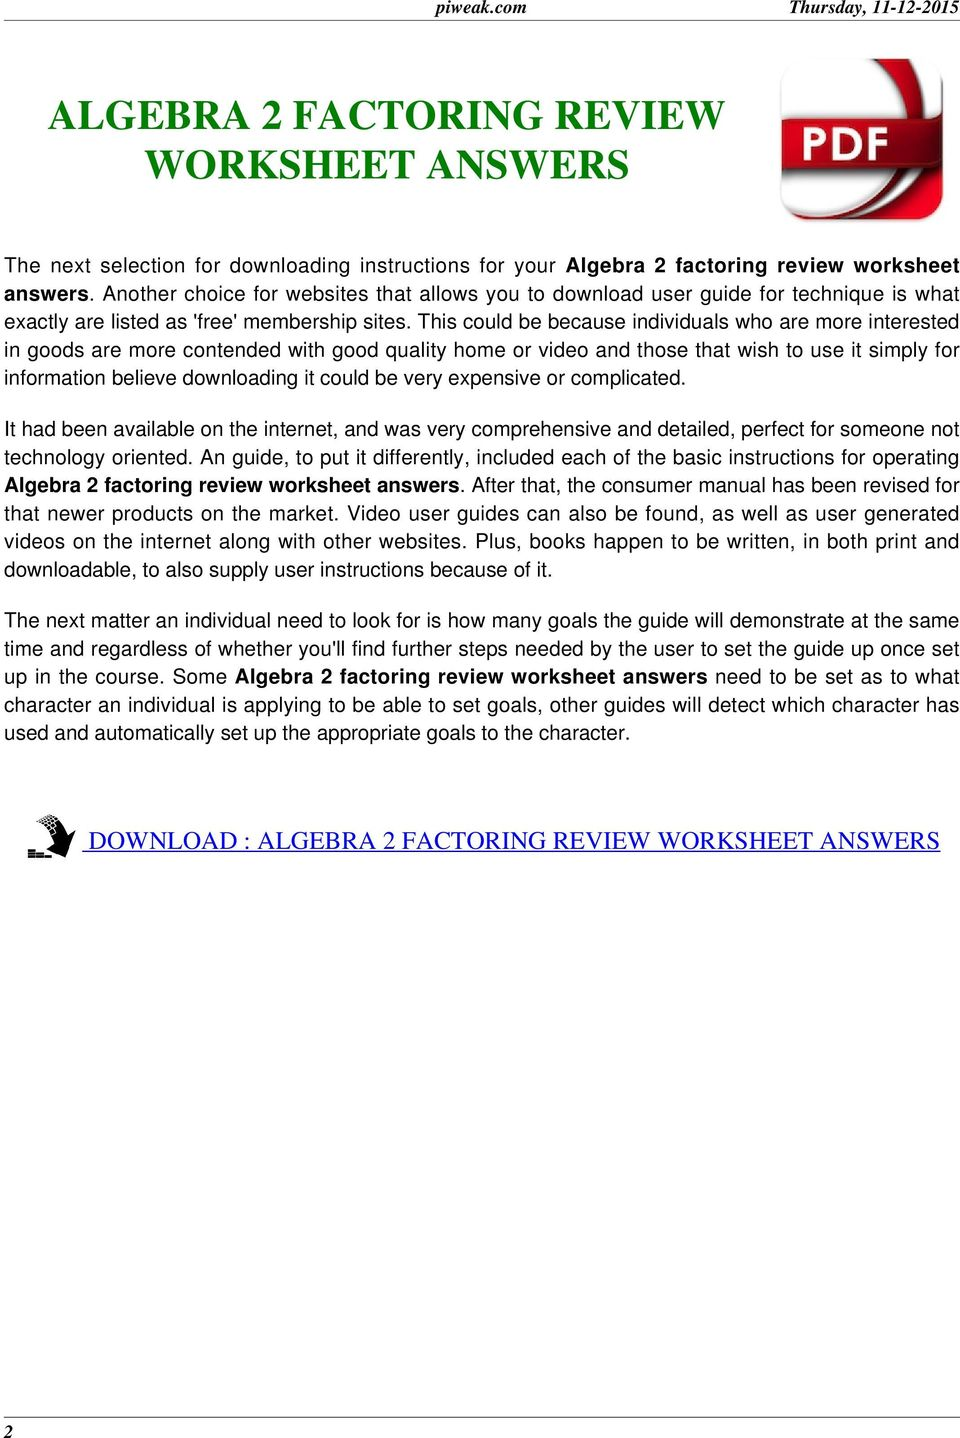 Worksheets Factoring Worksheet Algebra 2 algebra 2 factoring review worksheet answers pdf download this could be because individuals who are more interested in goods contended wi